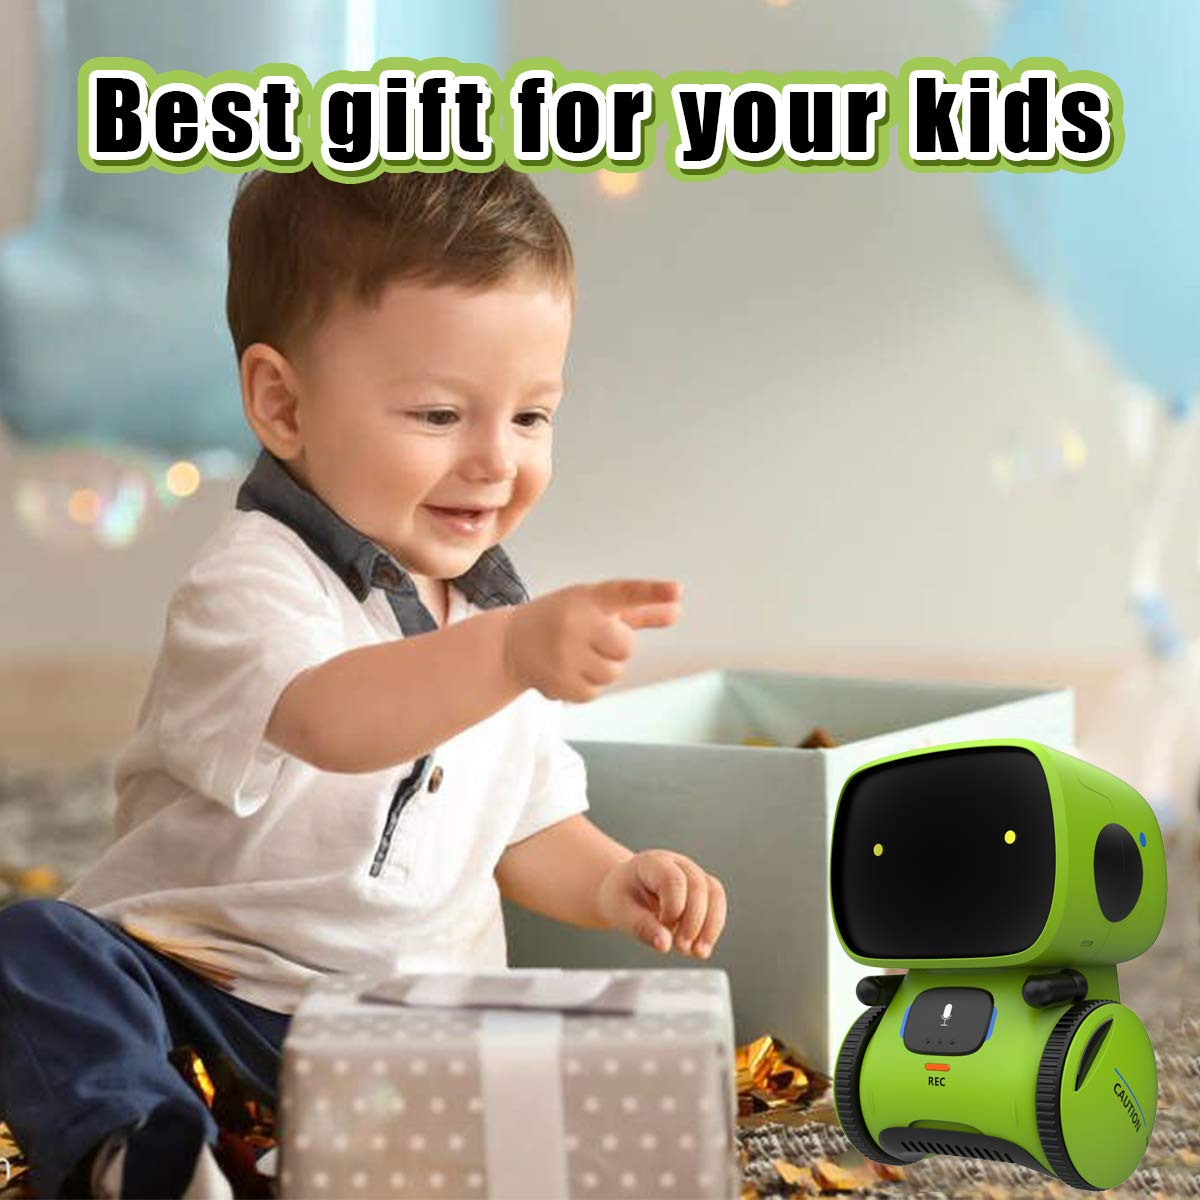 Gilobaby Kids Robot Toy, Talking Interactive Voice Controlled Touch Sensor Smart Robotics with Singing, Dancing, Repeating, Speech Recognition and Voice Recording, Gift for Kids Age 3+ (Green) by GILOBABY (Image #7)